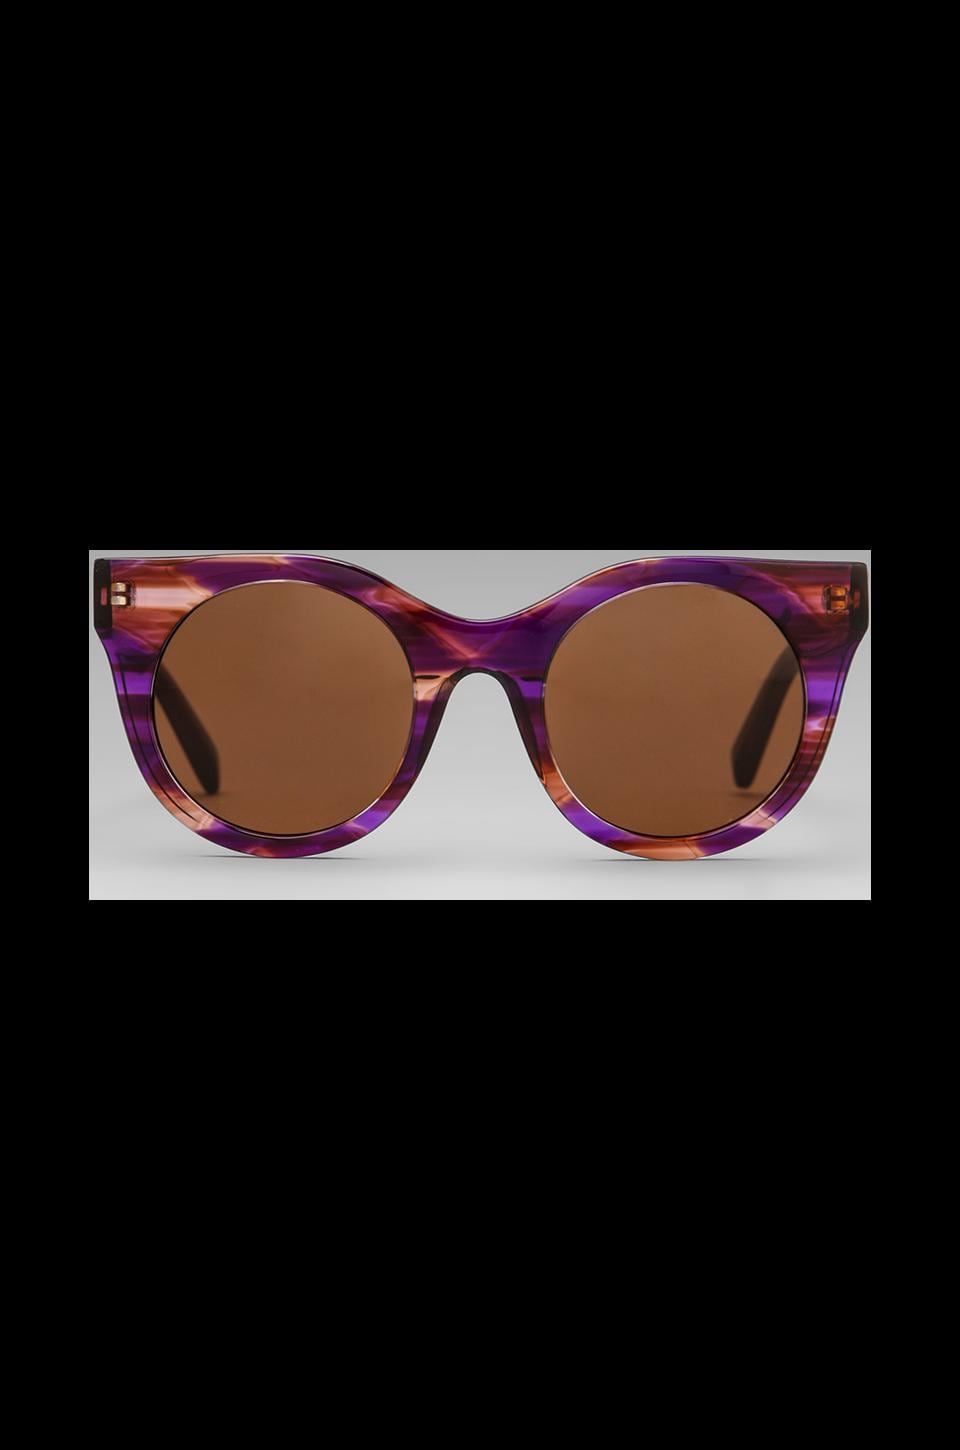 House of Harlow Daisy Sunglasses in Violet